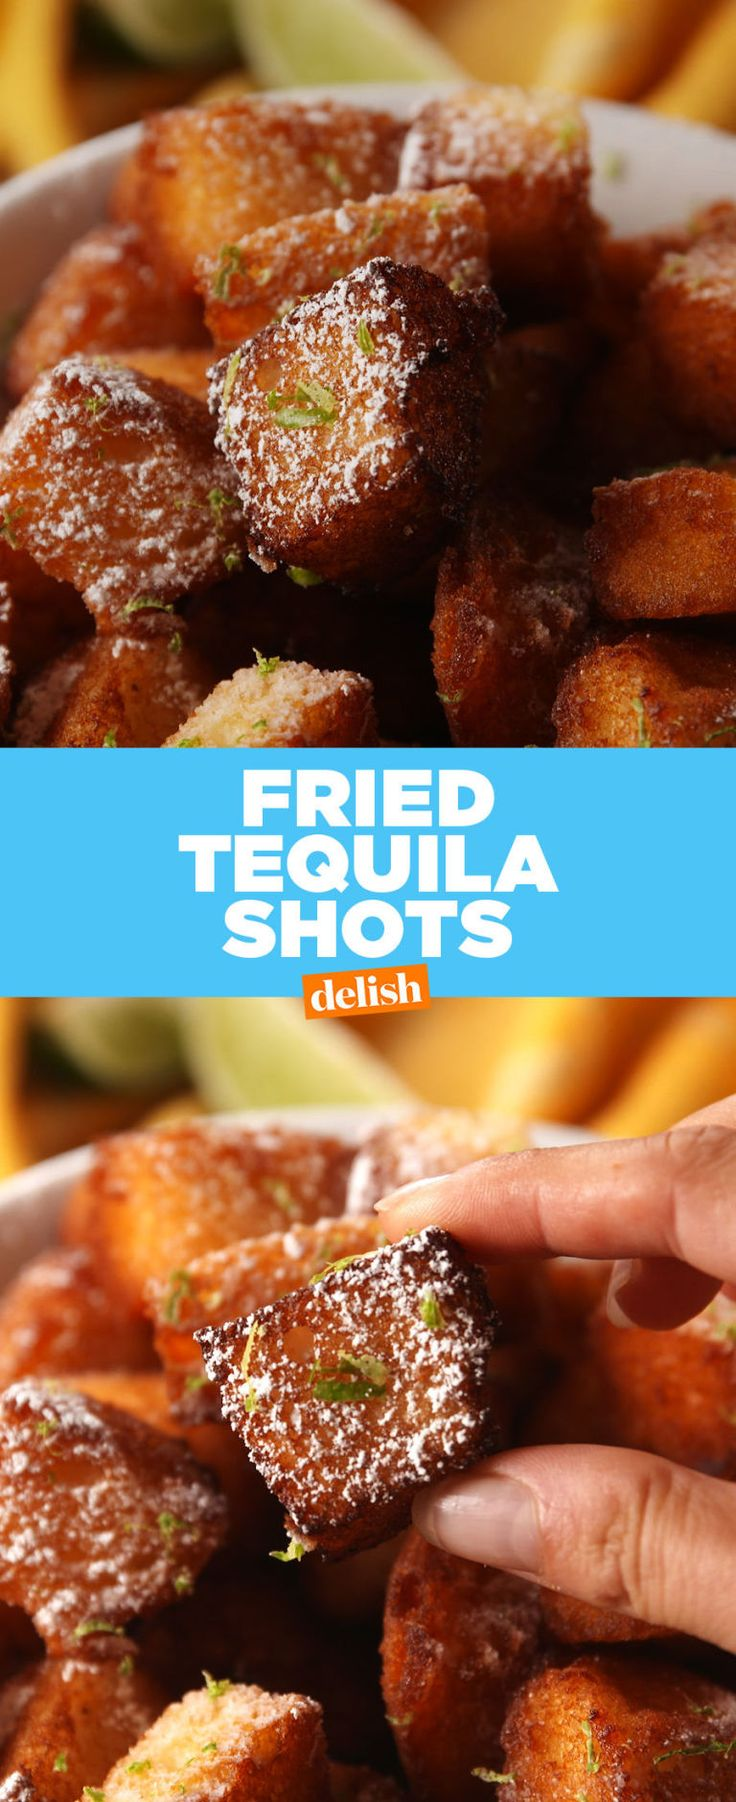 You Haven't Lived Until You've Fried Tequila Shots